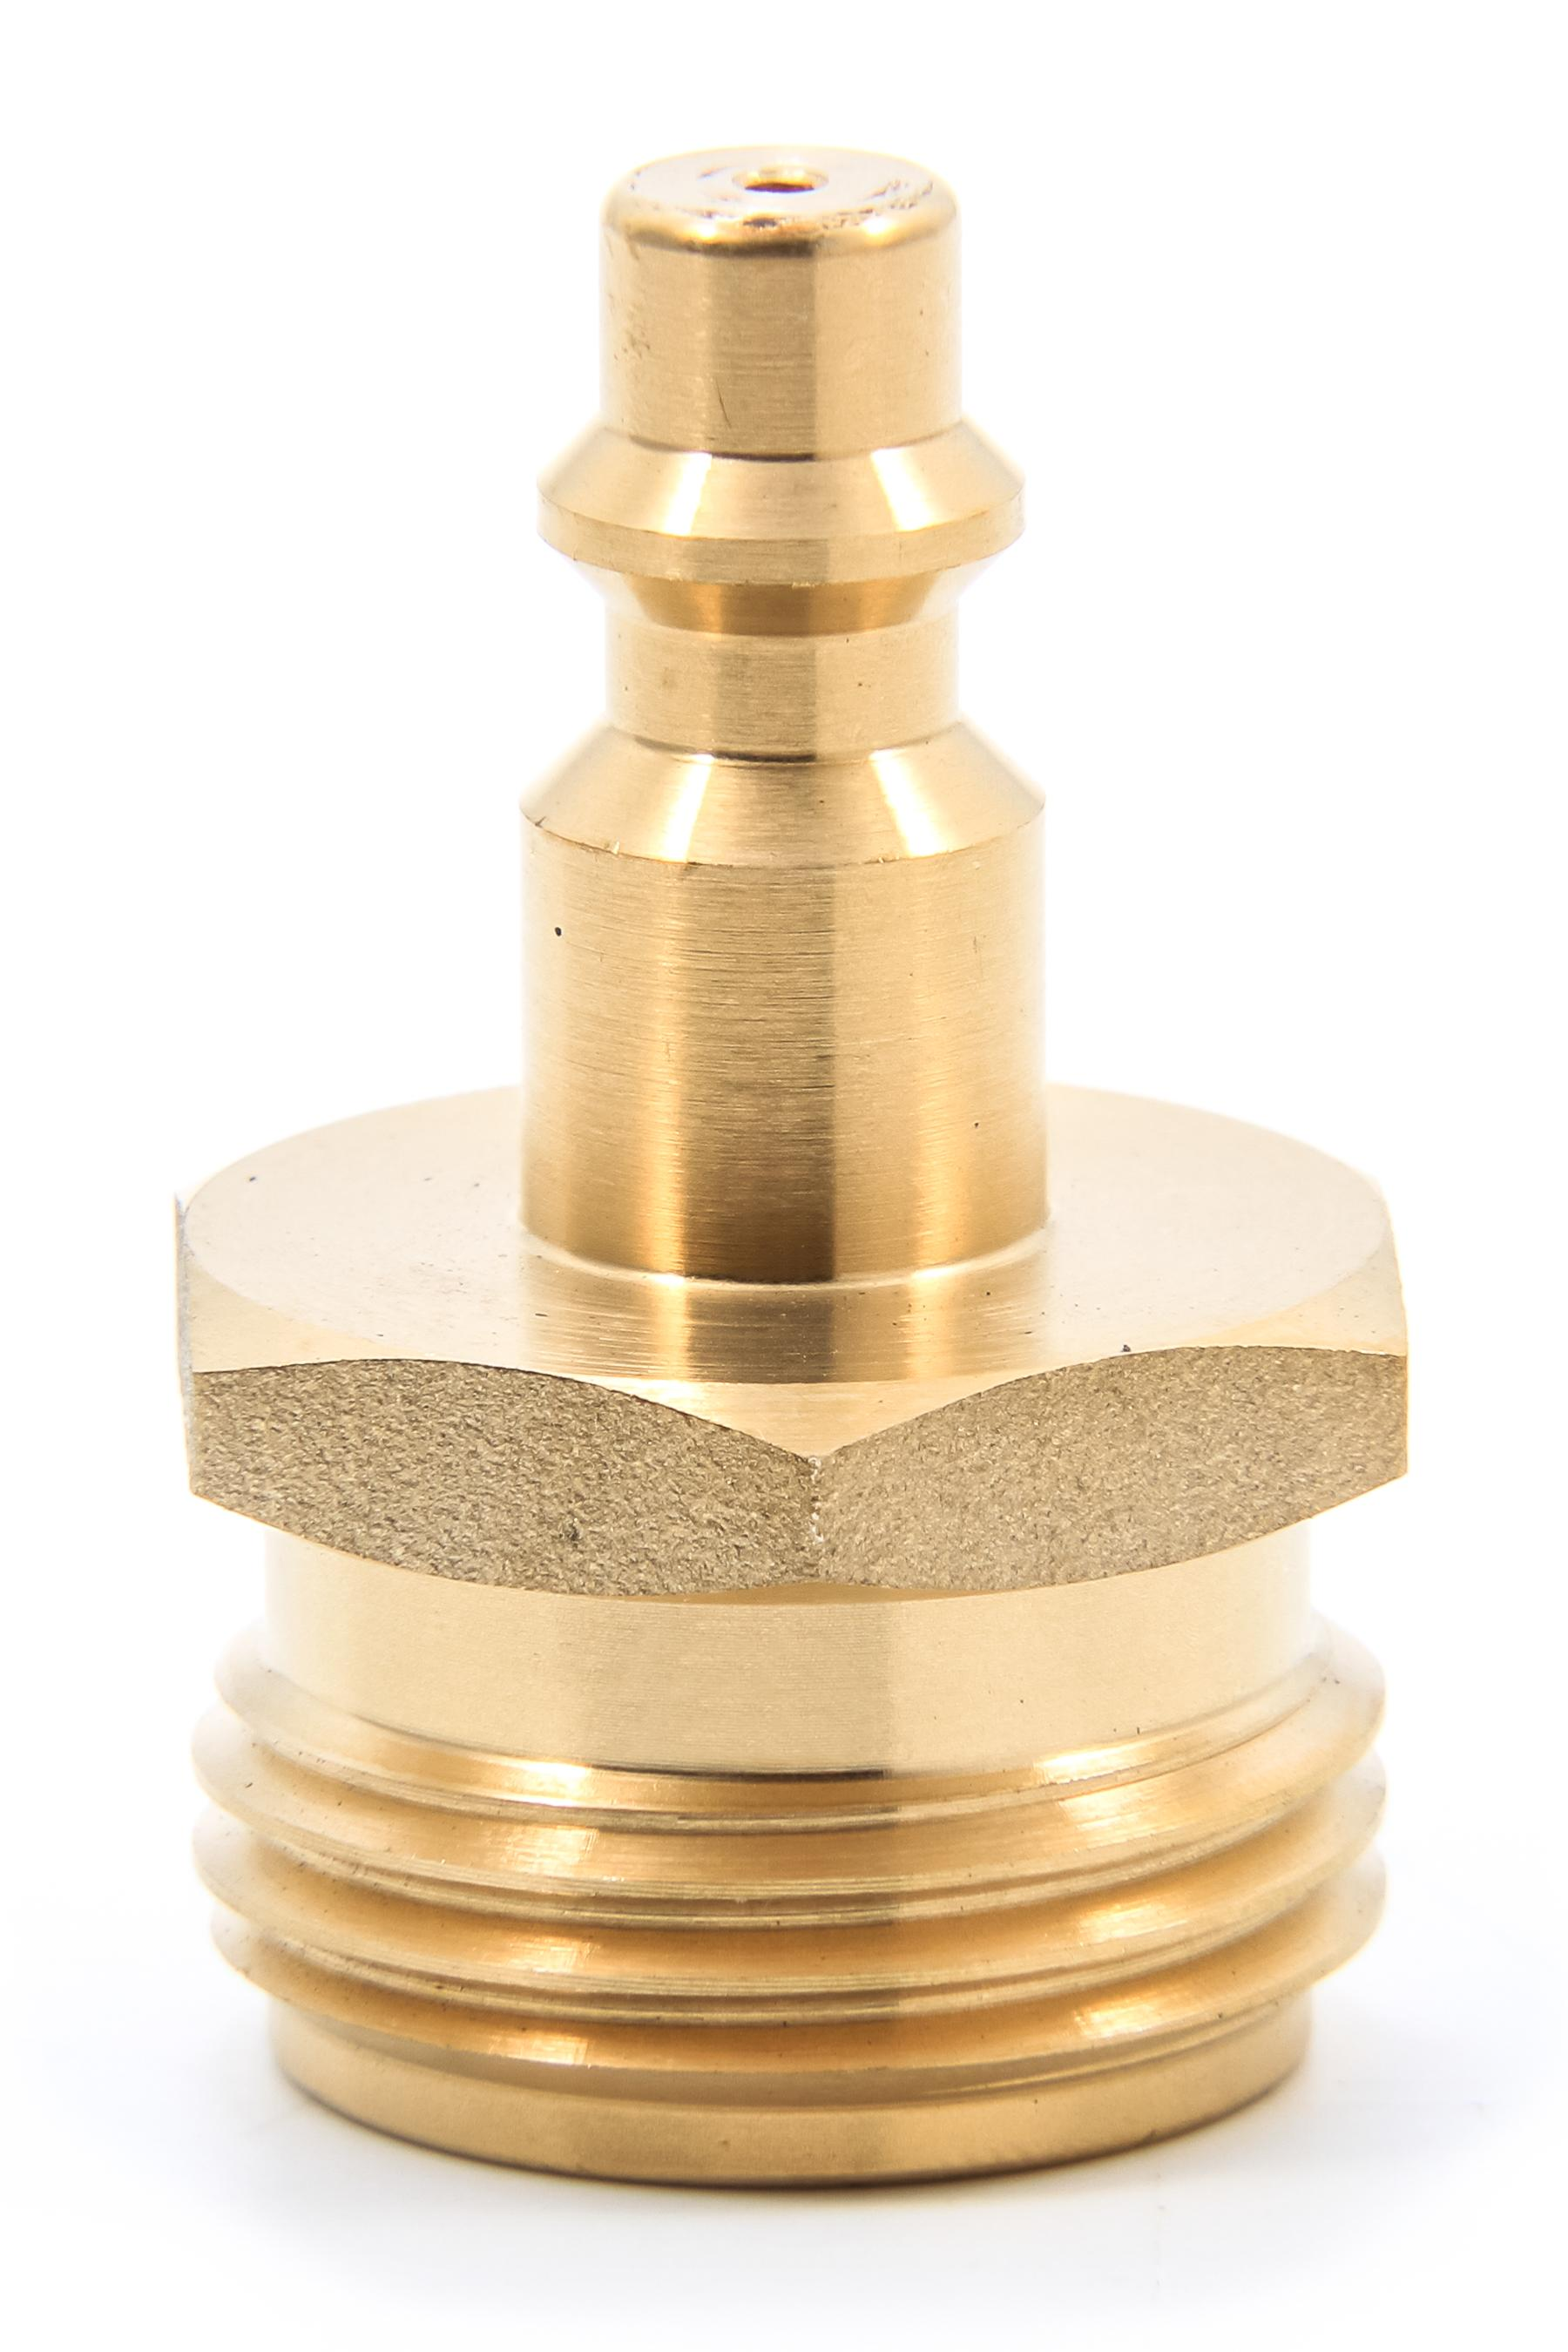 Amazon.com: Camco 36143 Blow Out Plug with Brass Quick